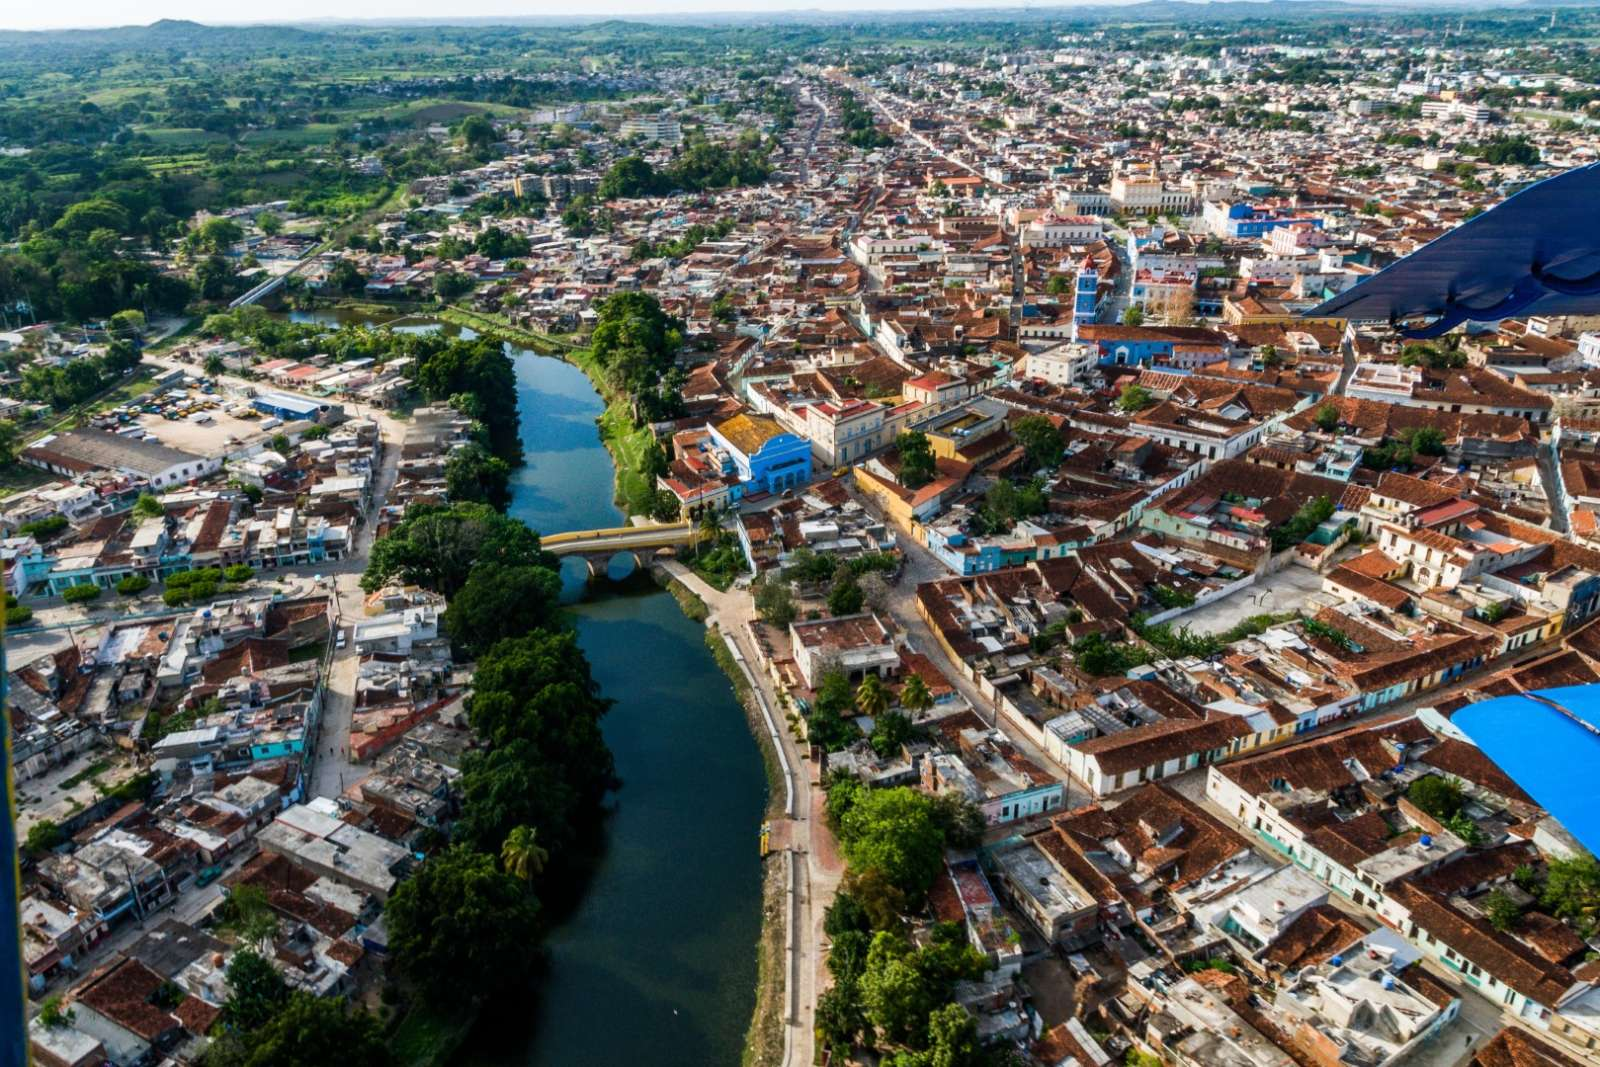 Aerial View Of Sancti Spiritus City, Cuba